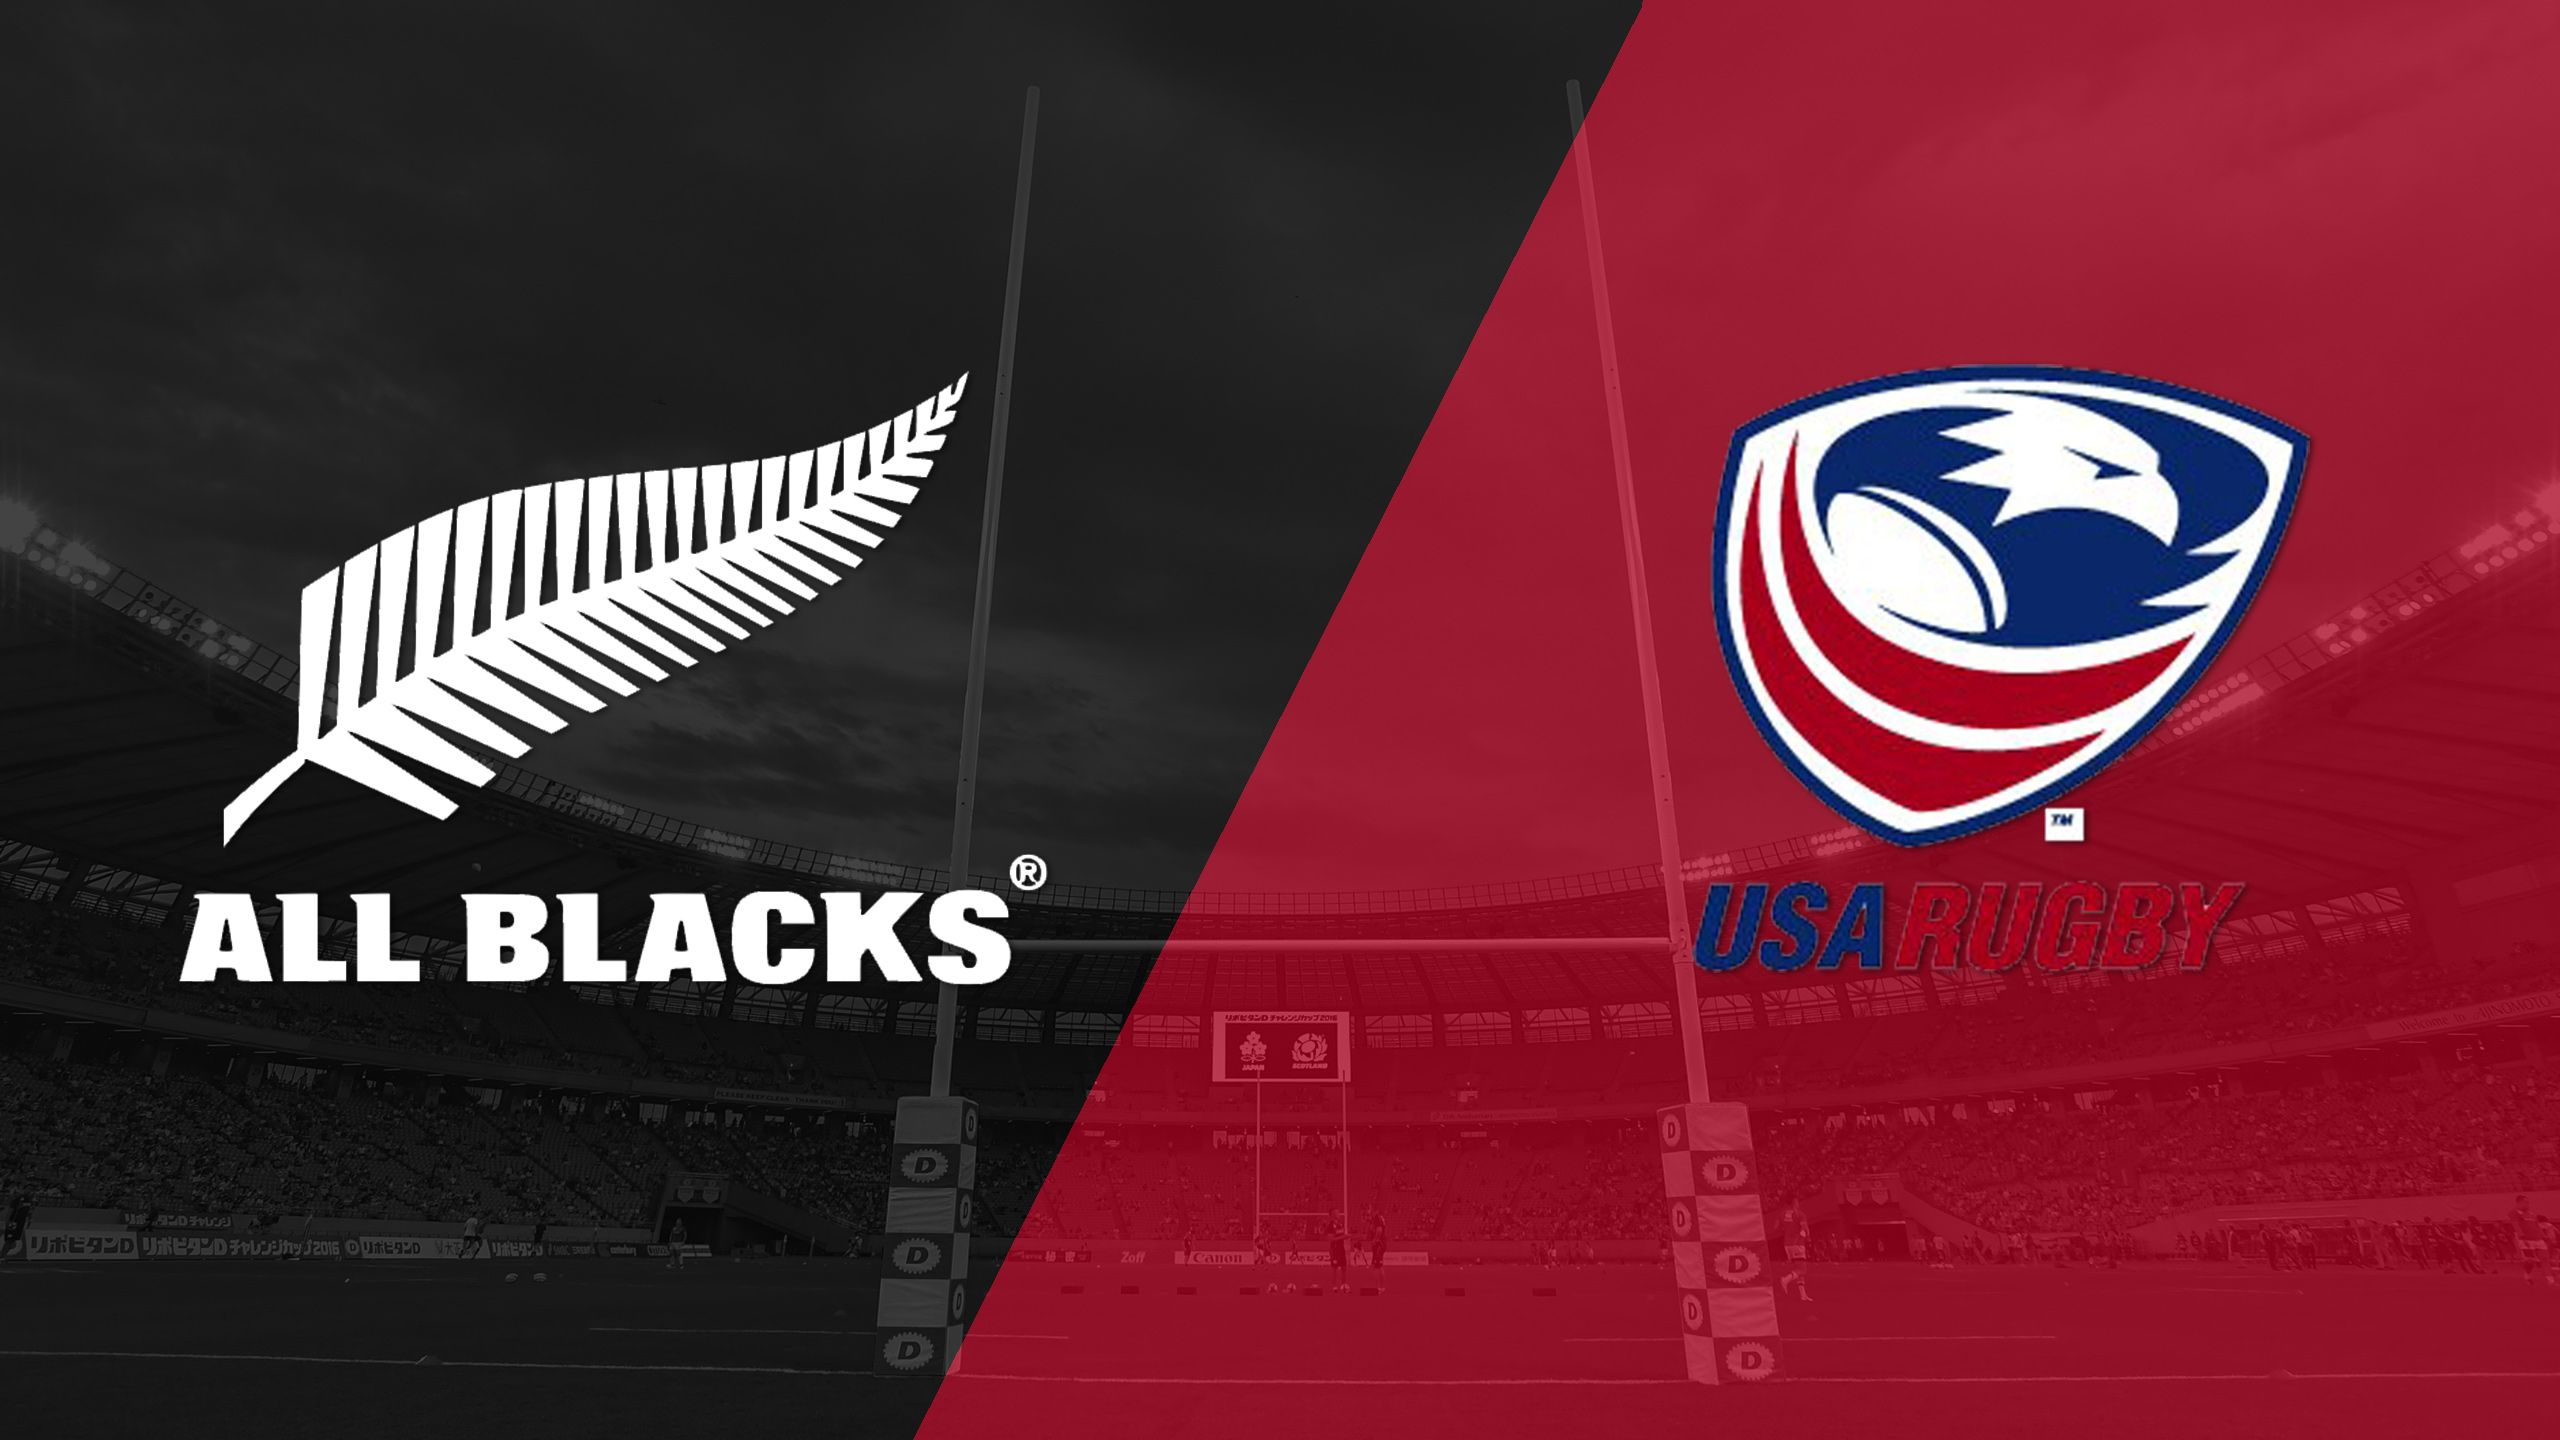 New Zealand vs. USA (World Rugby Sevens Series)